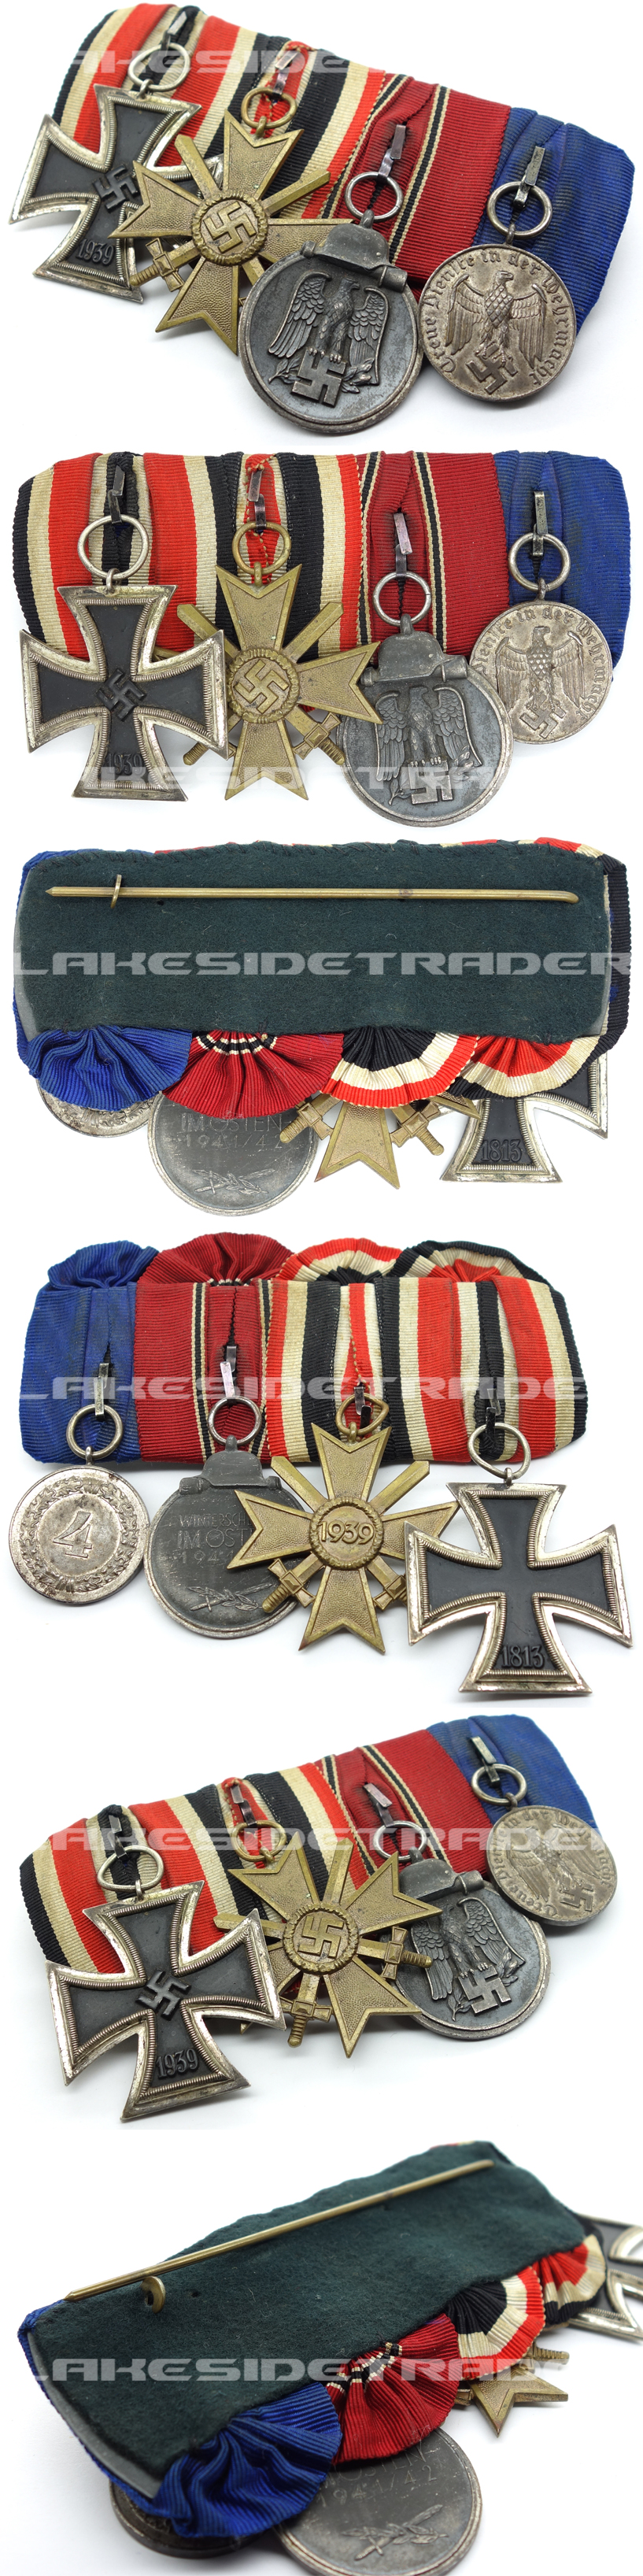 Four Piece Army Medal Bar